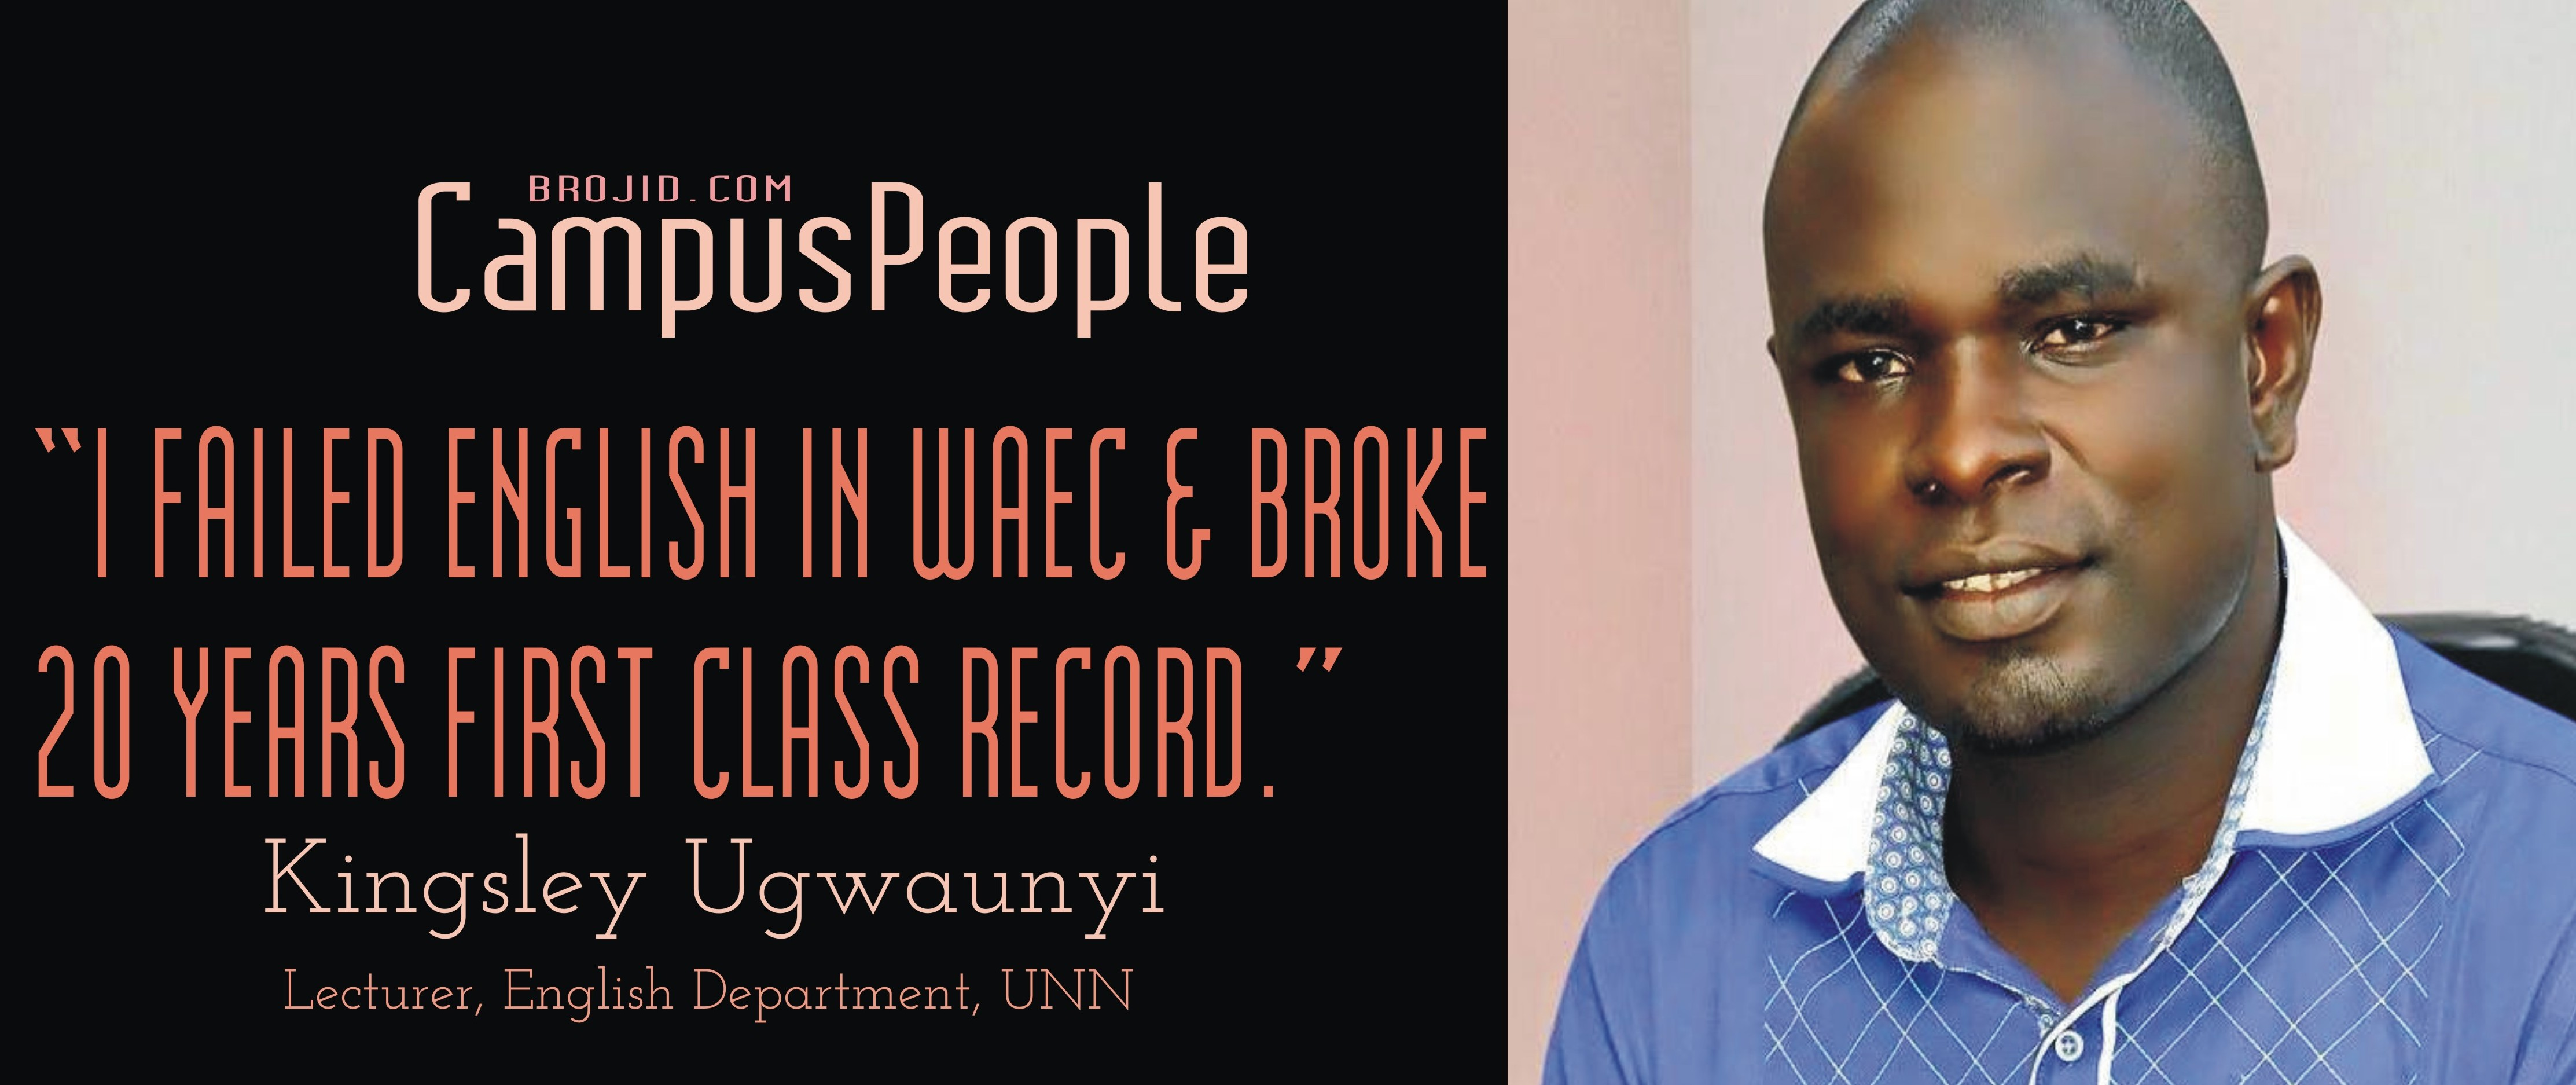 """[INTERVIEW] """"I FAILED ENGLISH IN WAEC & BROKE 20 YEARS FIRST CLASS RECORD IN ENGLISH DEPARTMENT"""" ~KINGSLEY UGWUANYI, LECTURER, ENGLSIH DEPARTMENT, UNN"""